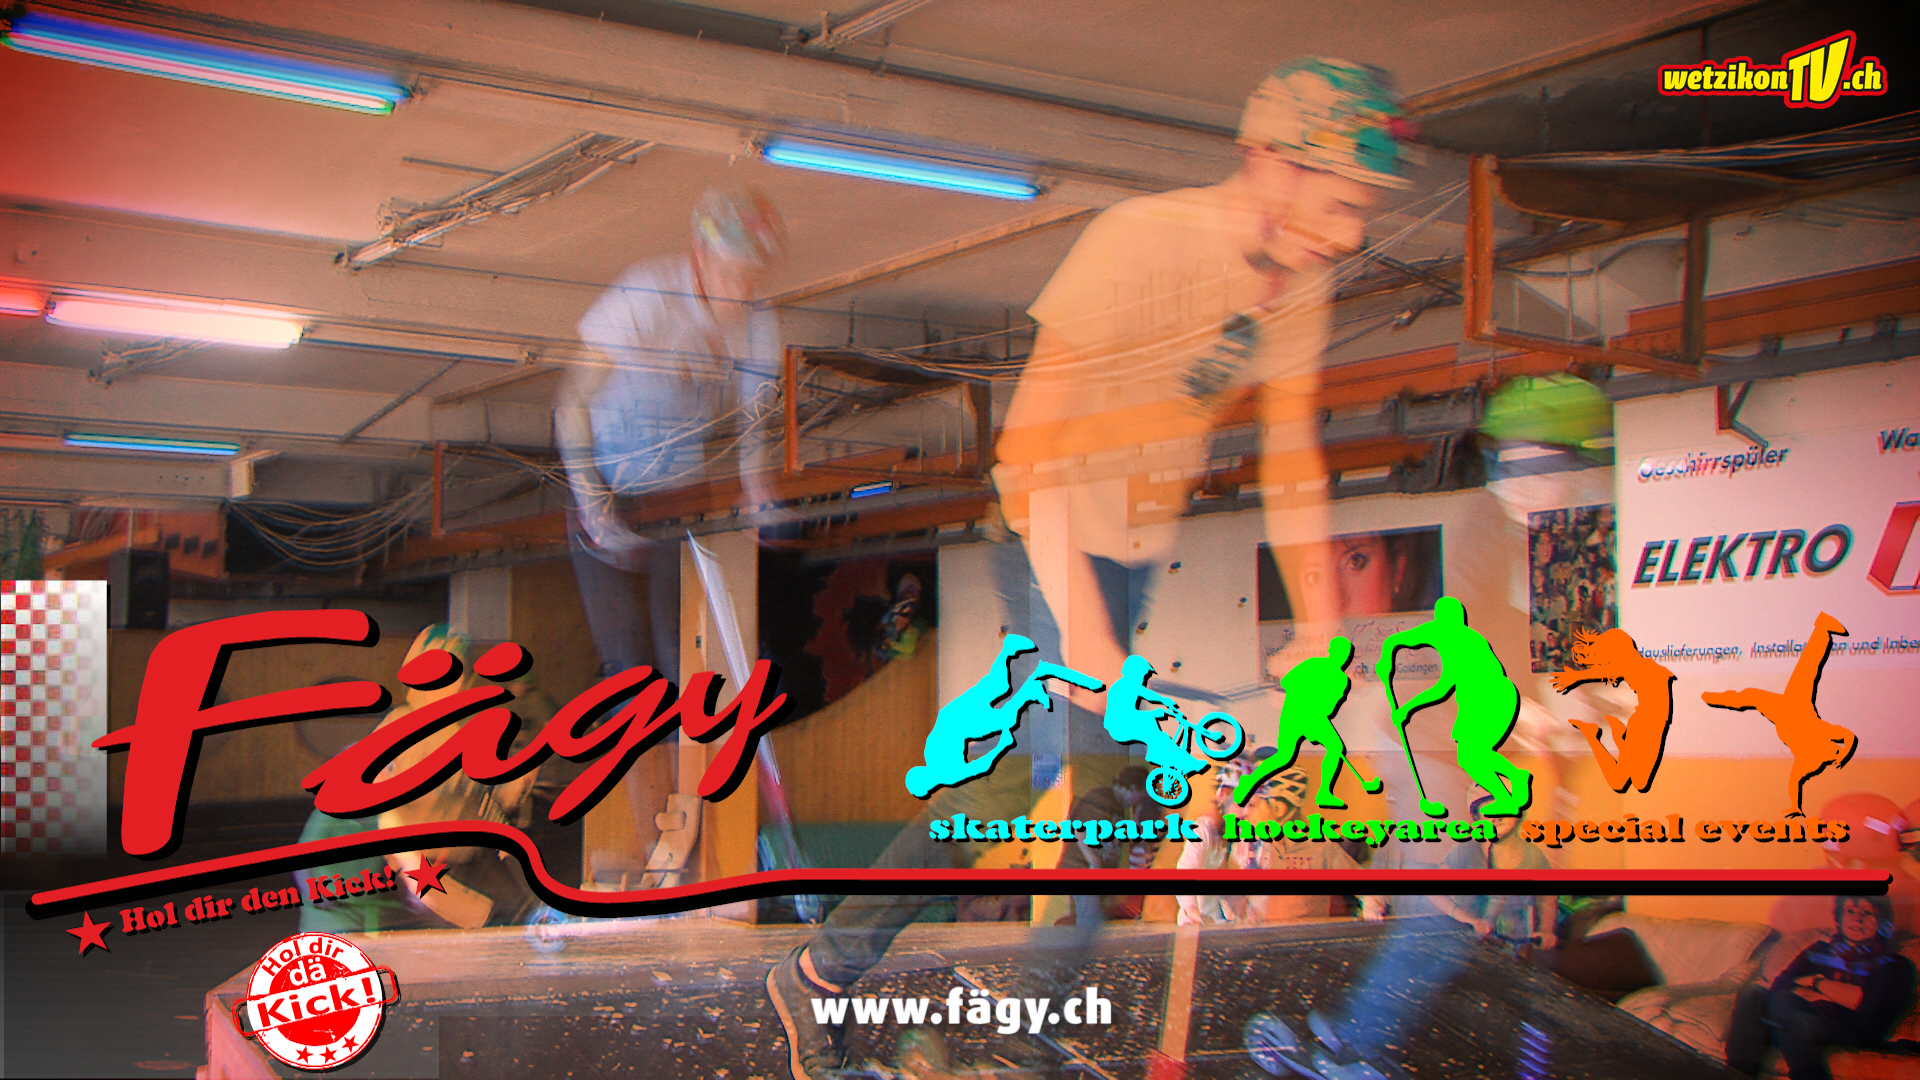 <a href=&quot;http://www.fägy.ch&quot; target=&quot;_blank&quot;>www.fägy.ch</a>